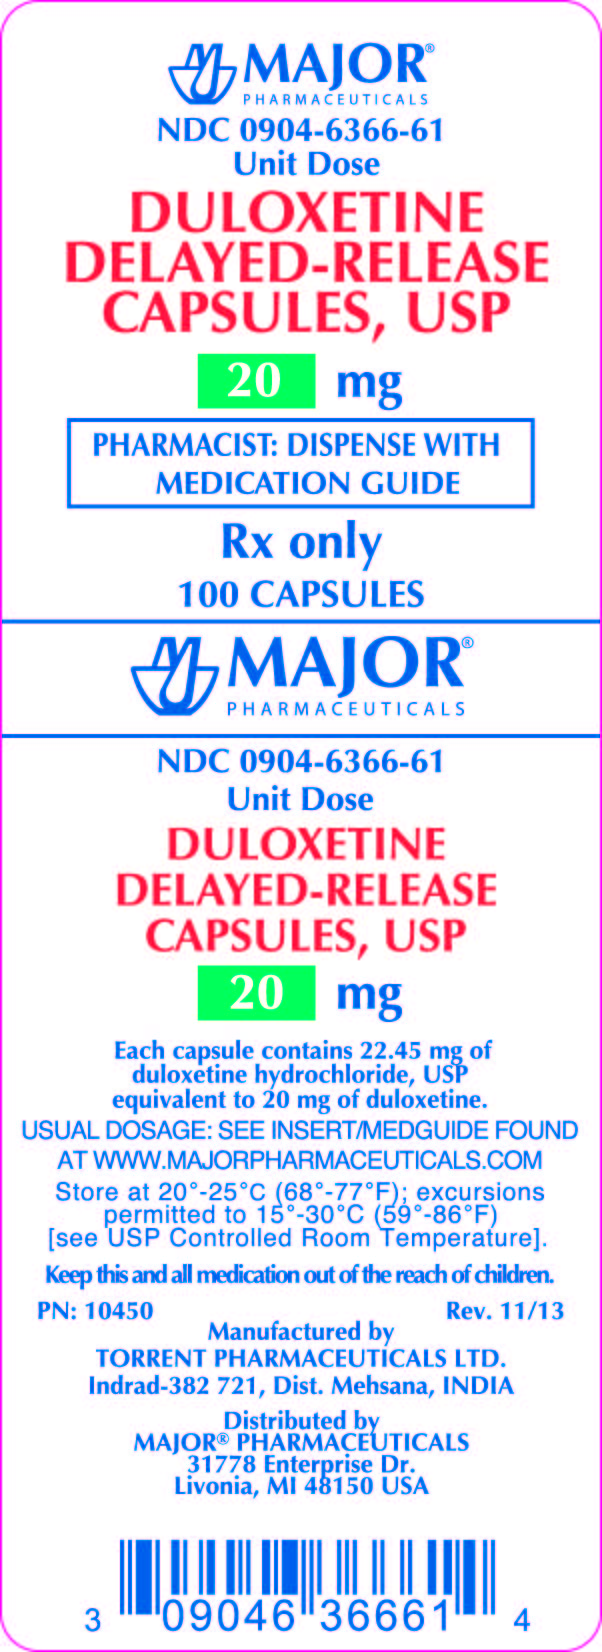 PRINCIPAL DISPLAY PANEL DULOXETINE DELAYED-RELEASE CAPSULES, USP 20MG